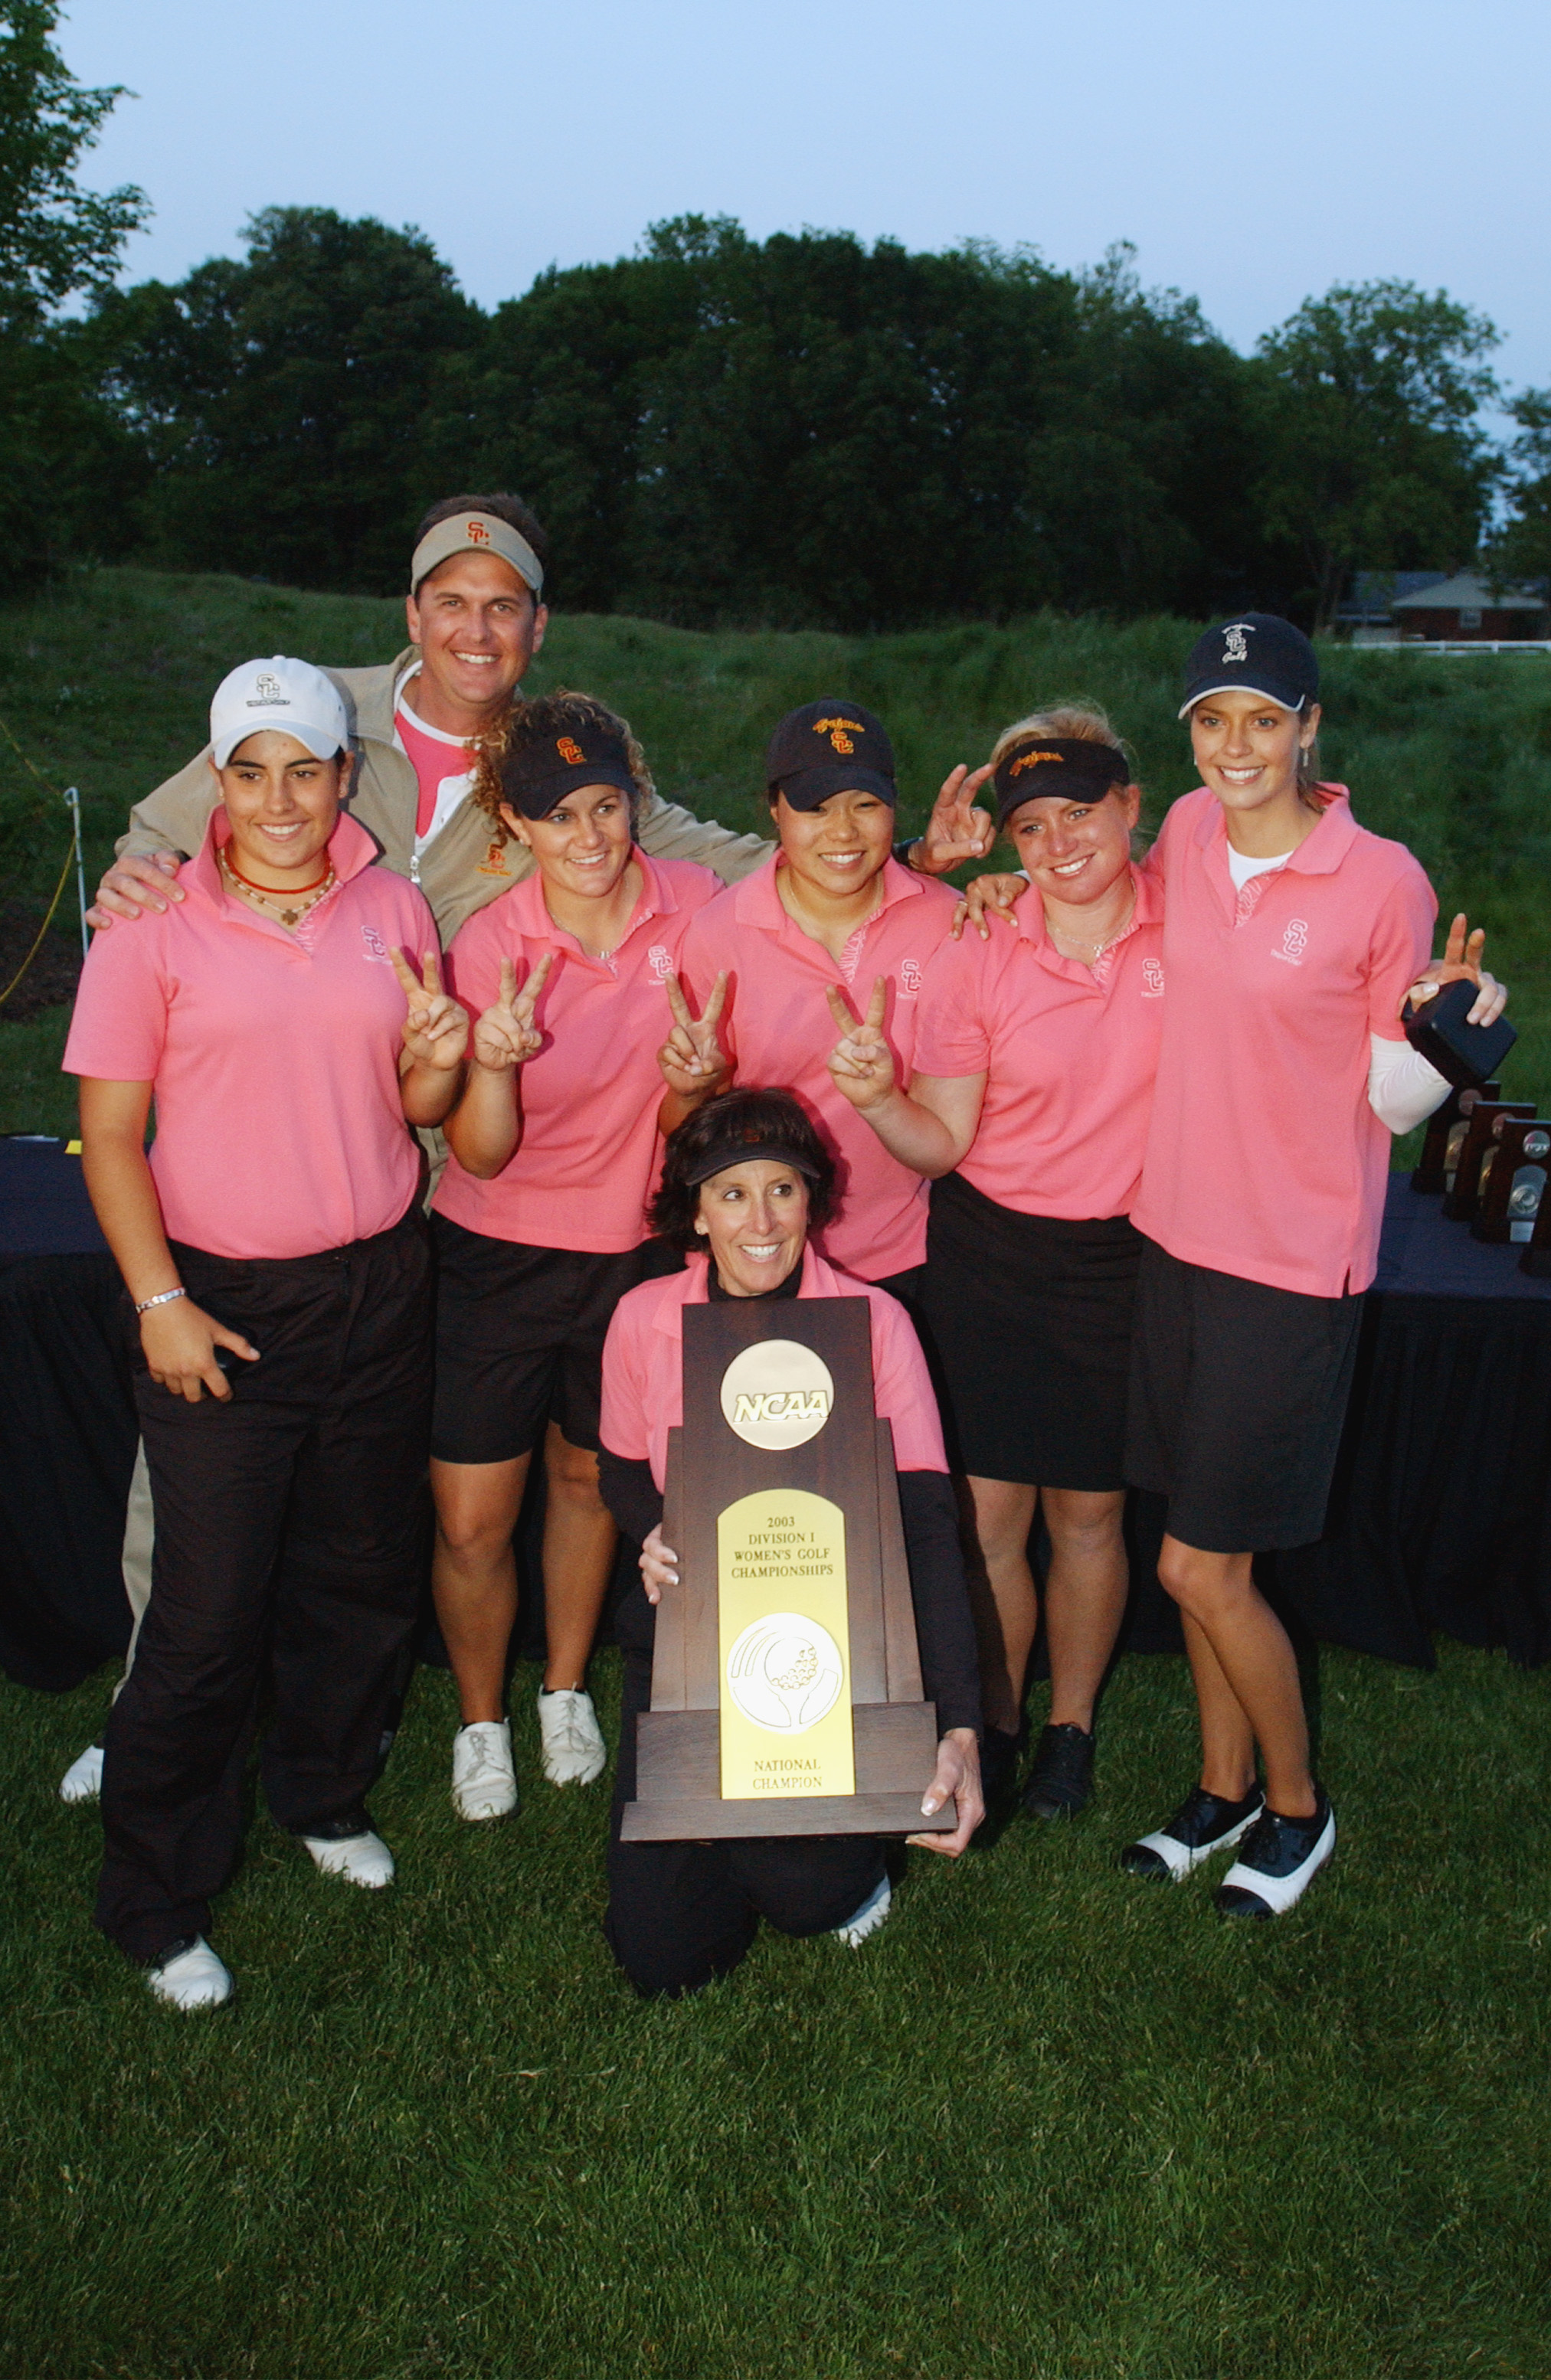 USC poses for photographers with trophy